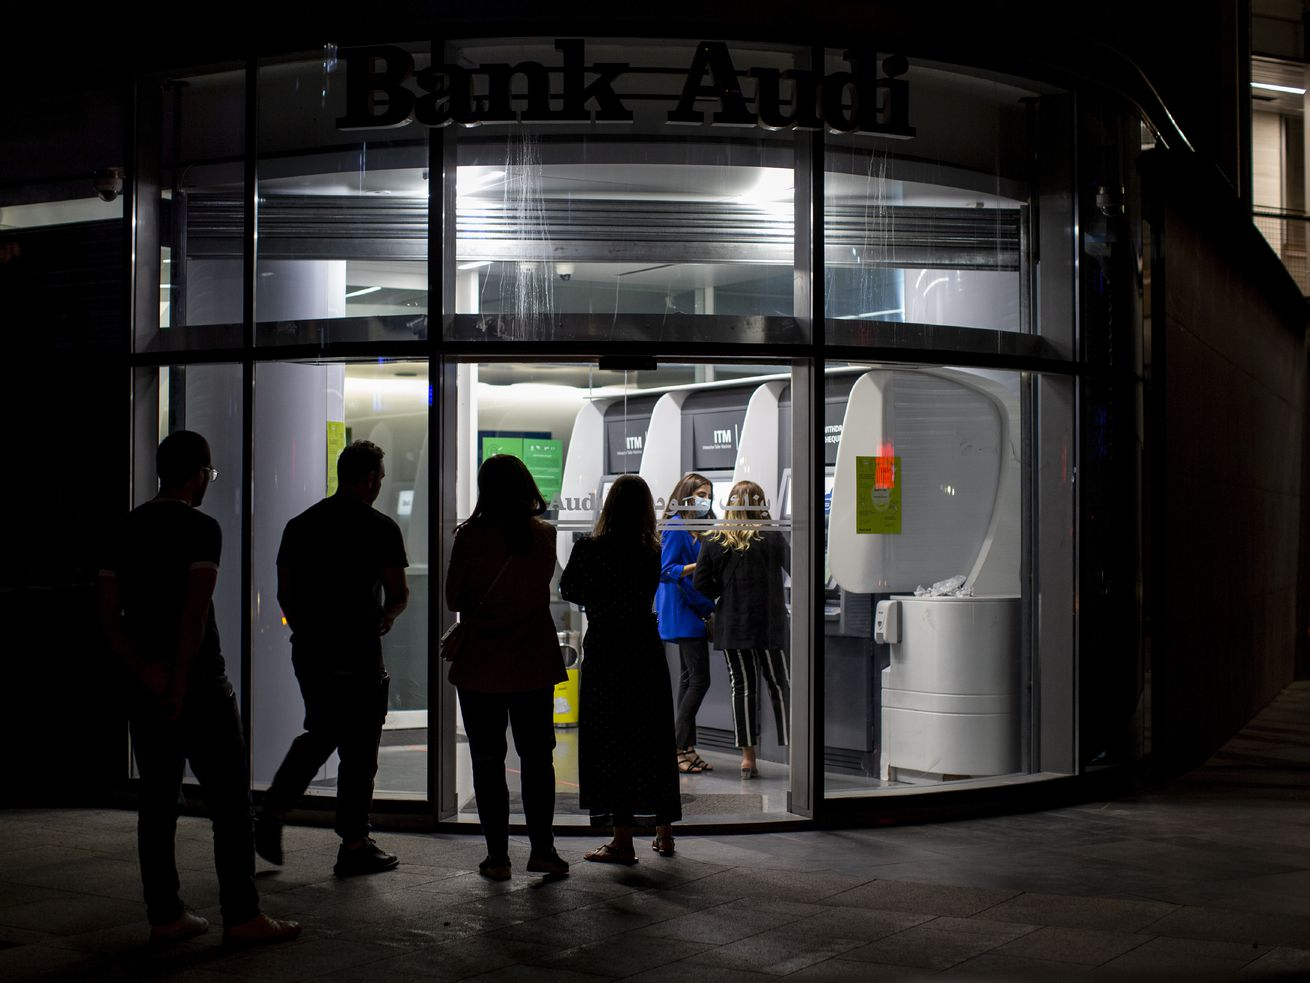 Clients wait to use ATM machines outside a closed bank in Beirut, Lebanon, Wednesday, June 2, 2021.